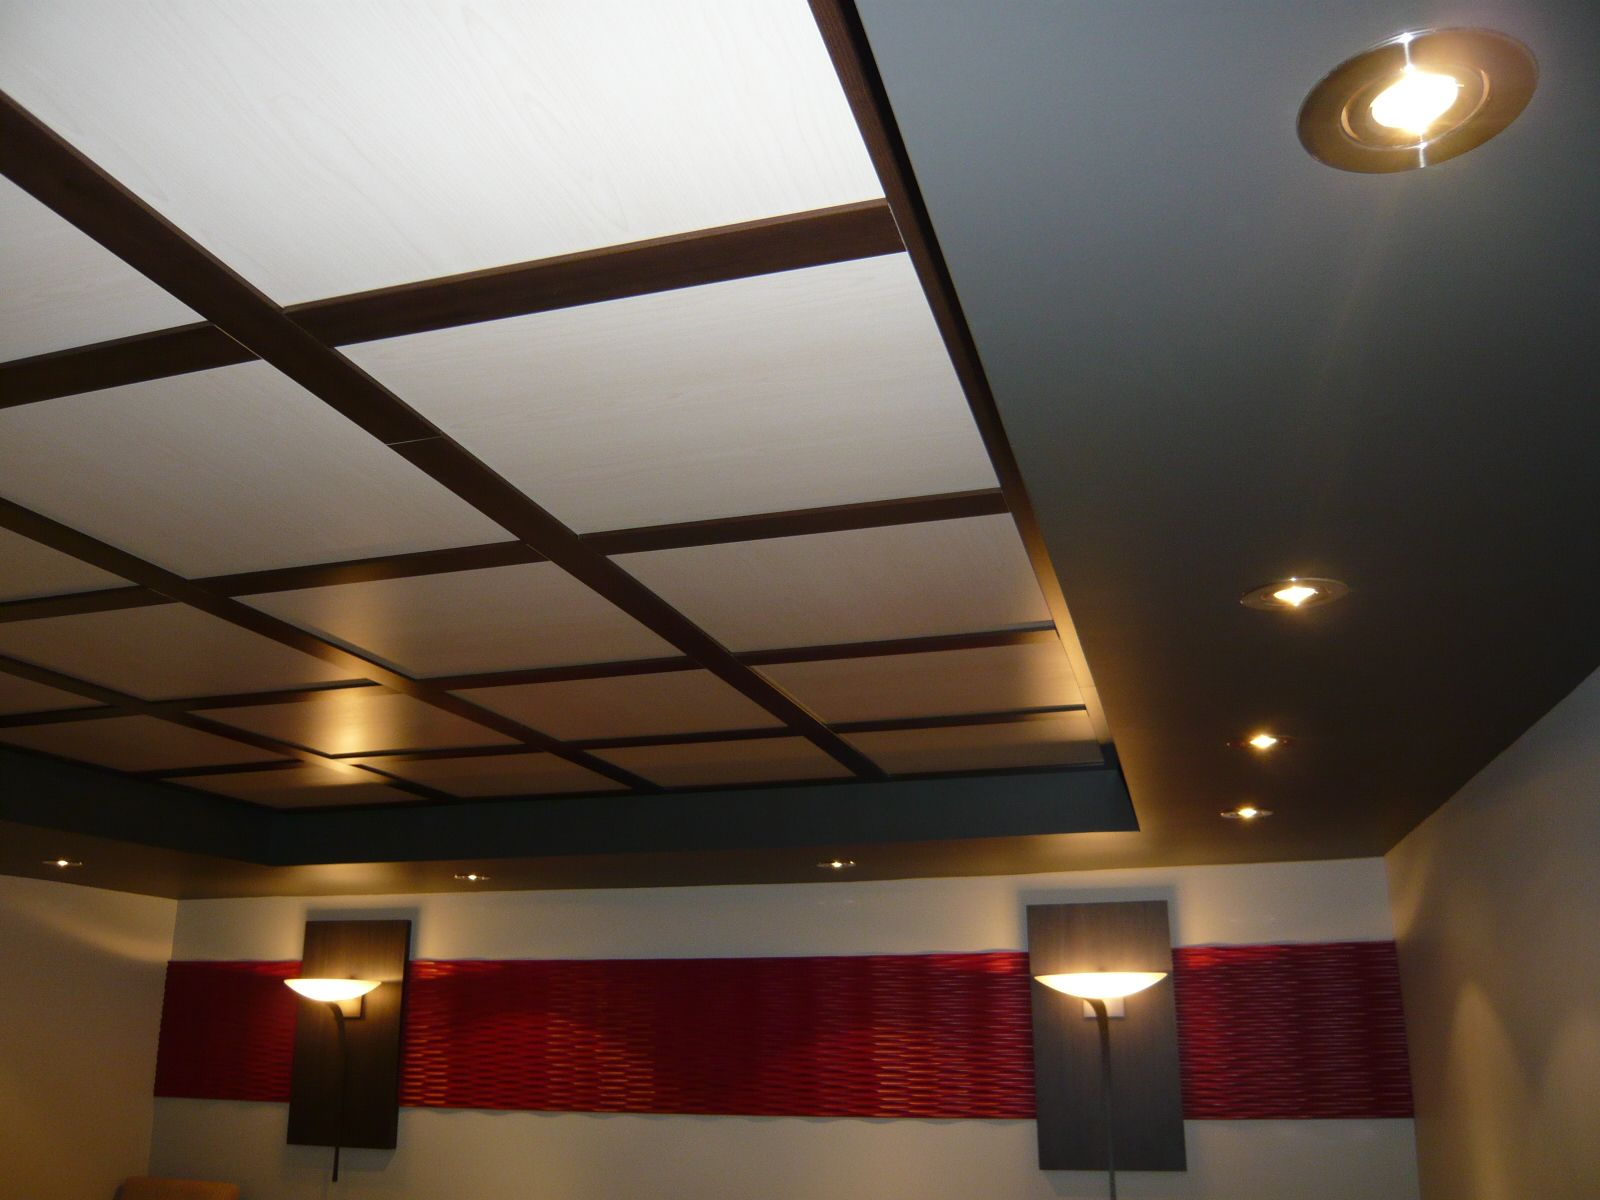 plafond suspendu embassy rable et caf plafond embassy suspended ceiling maple and coffee